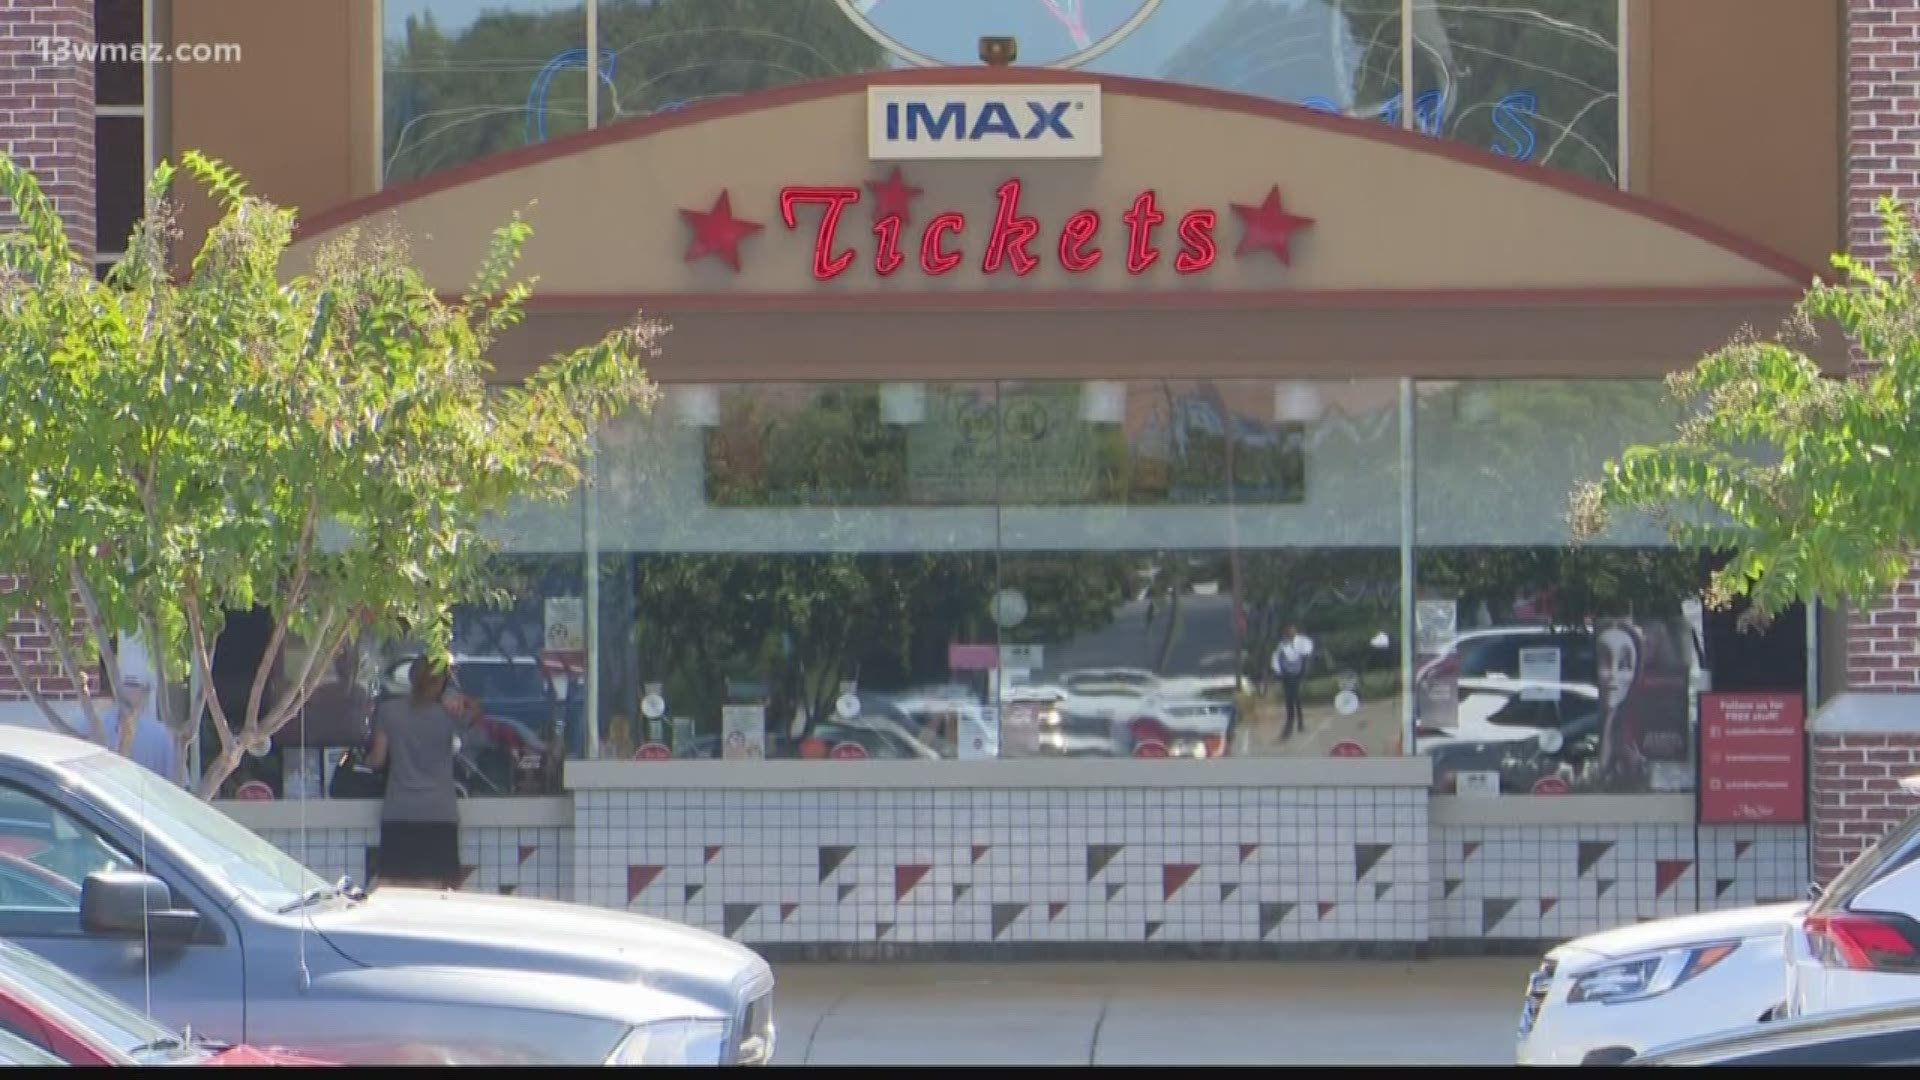 Verify Was There A Shooting At The Amstar 16 Macon Movie Theater 13wmaz Com May also appear on your statement as verify was there a shooting at the macon amstar theater